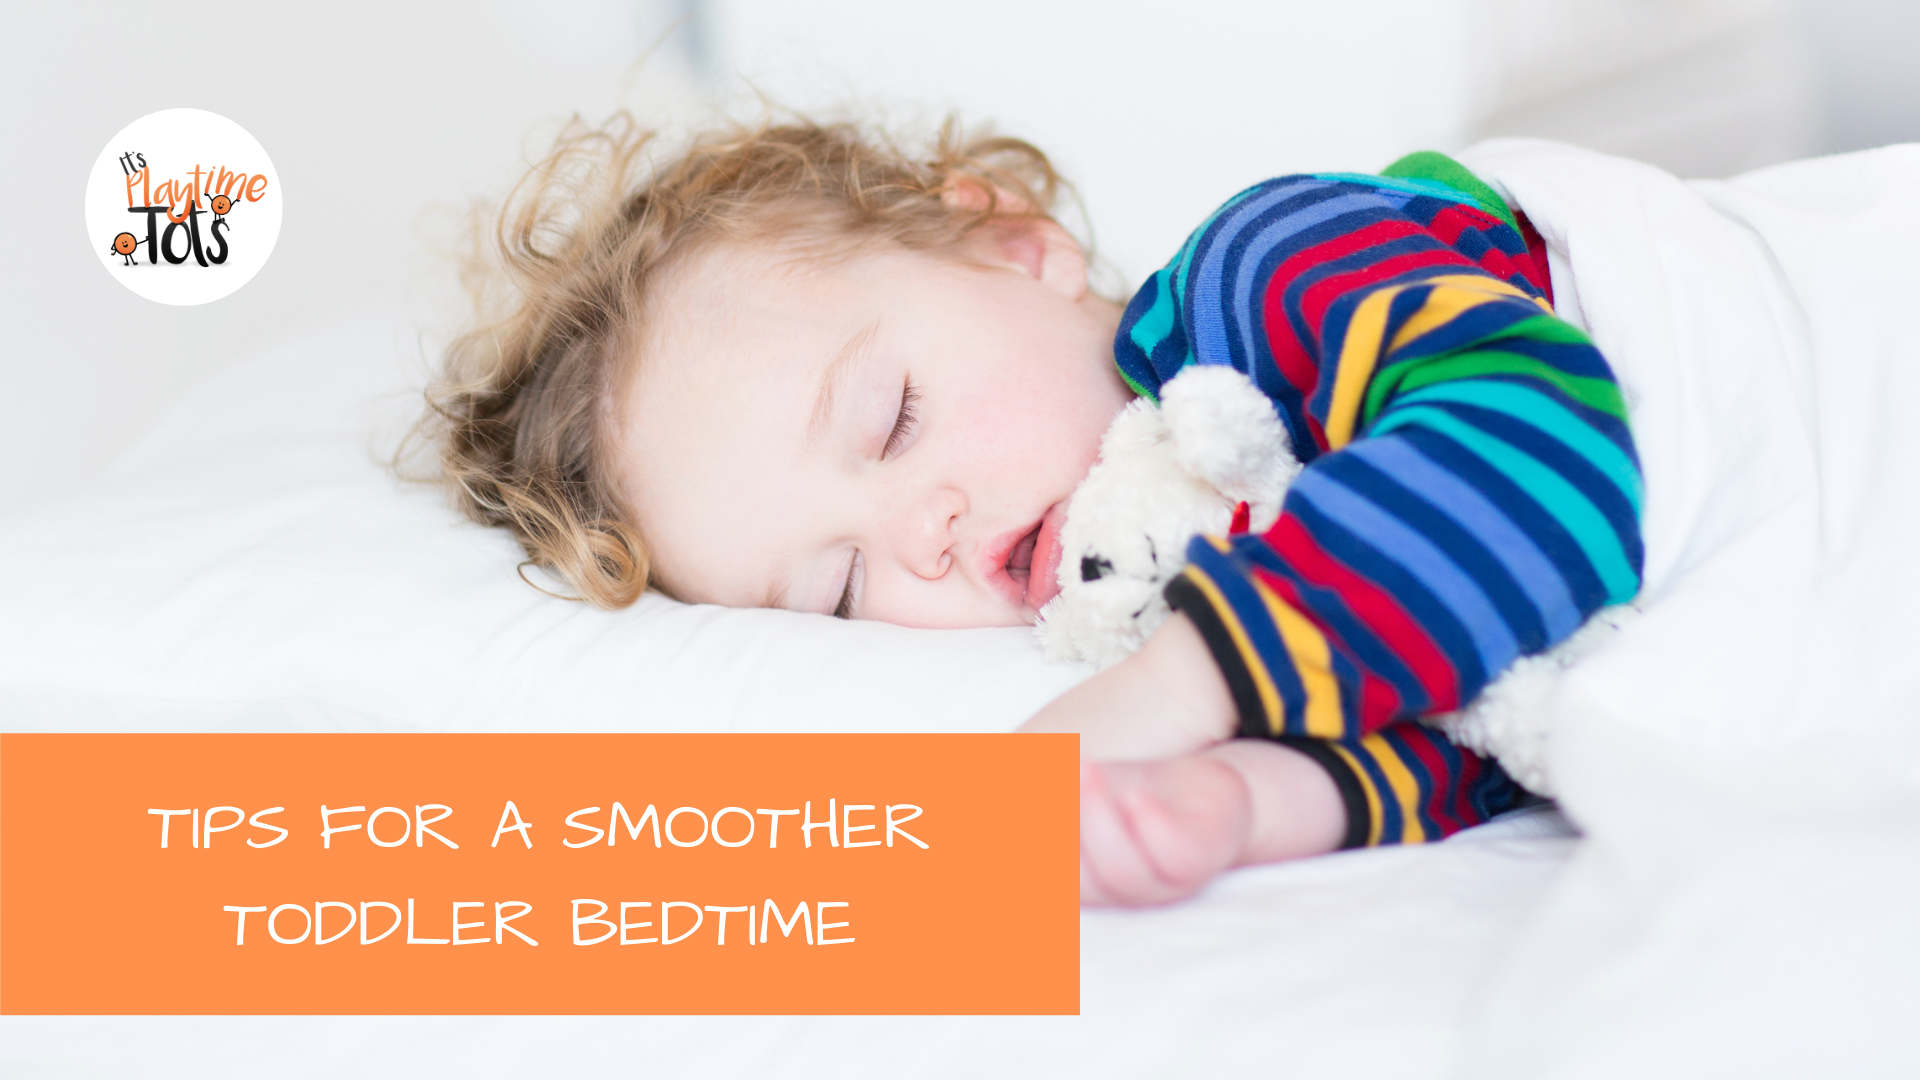 Tips For a Smoother Toddler Bedtime